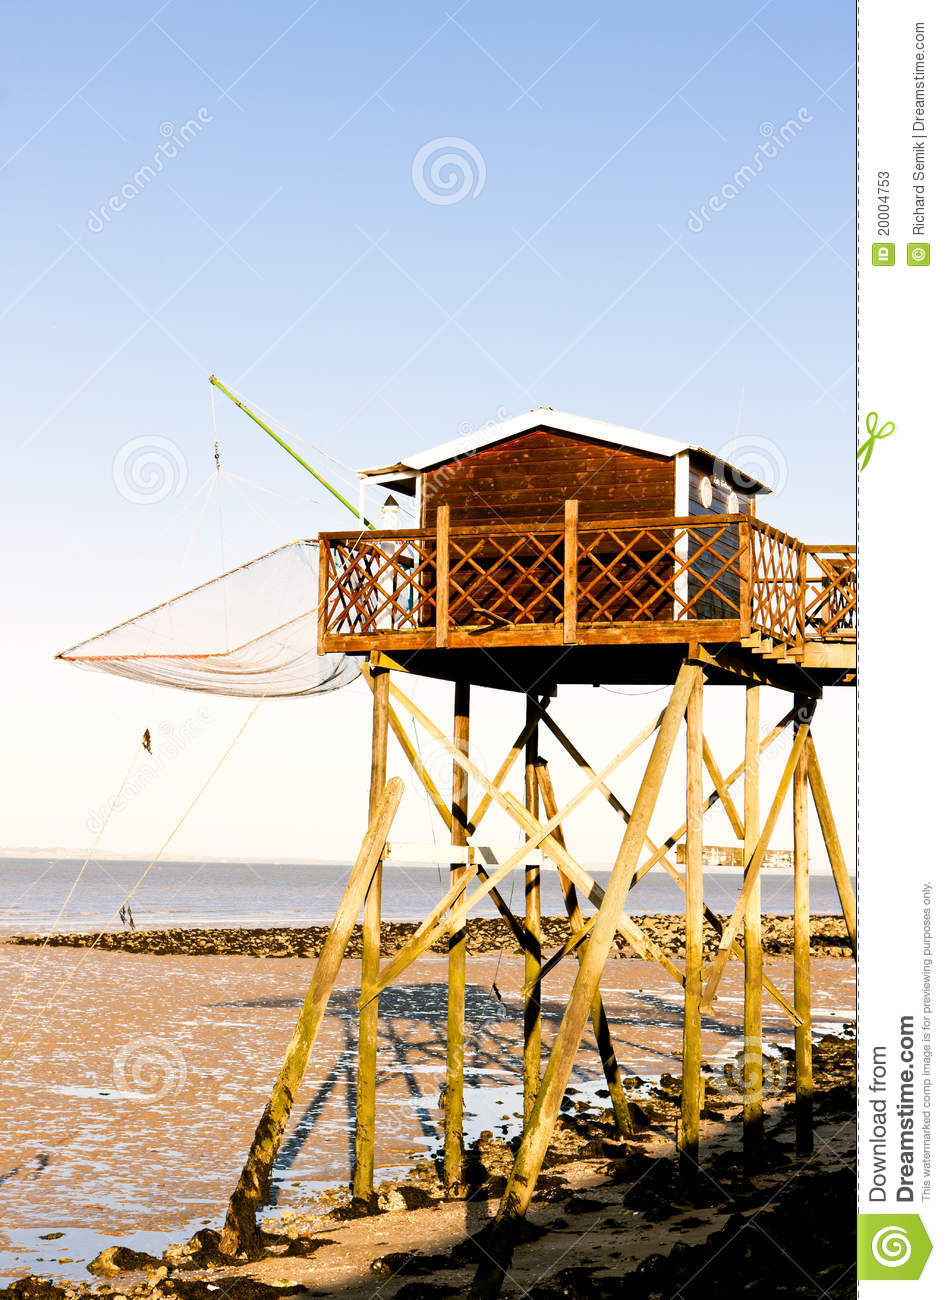 Pier with fishing net stock photos image 20004753 for Pier fishing net